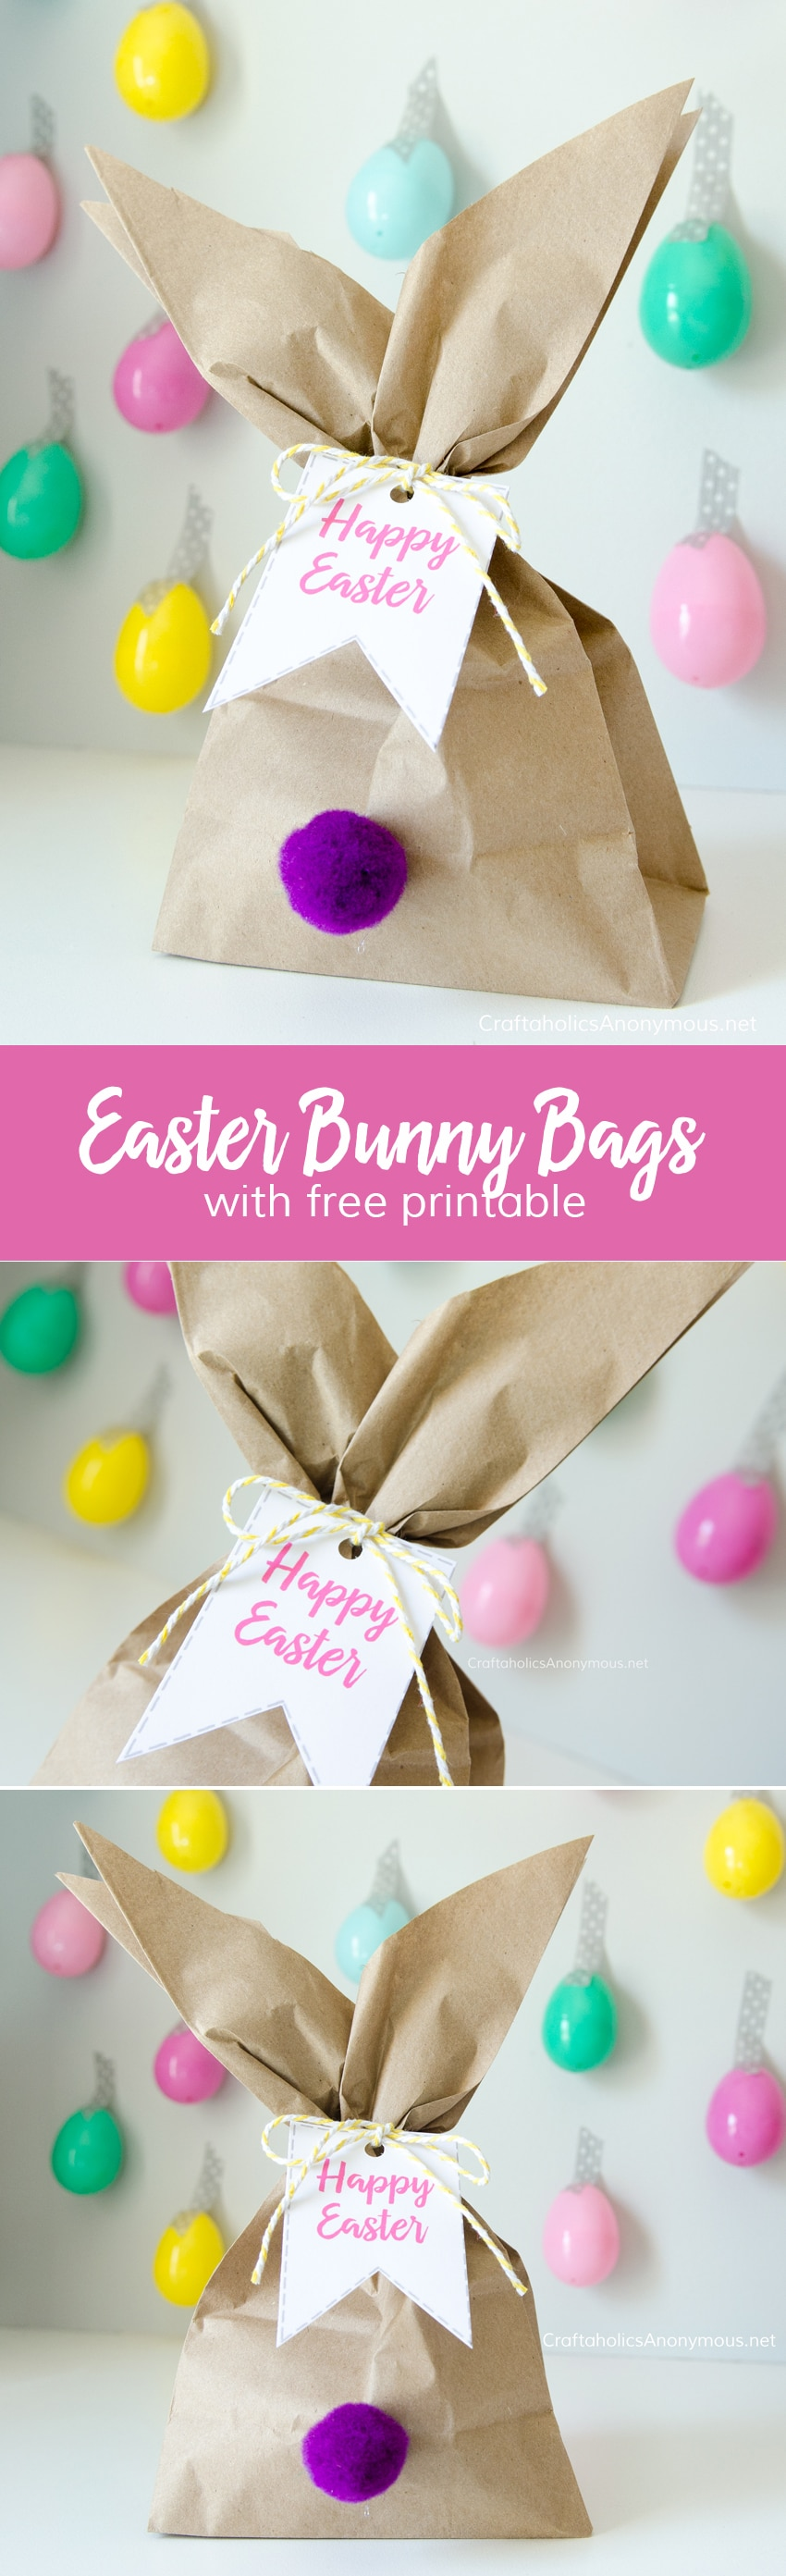 Use brown paper bags for simple favors. Lots of other great bunny craft ideas here, too.